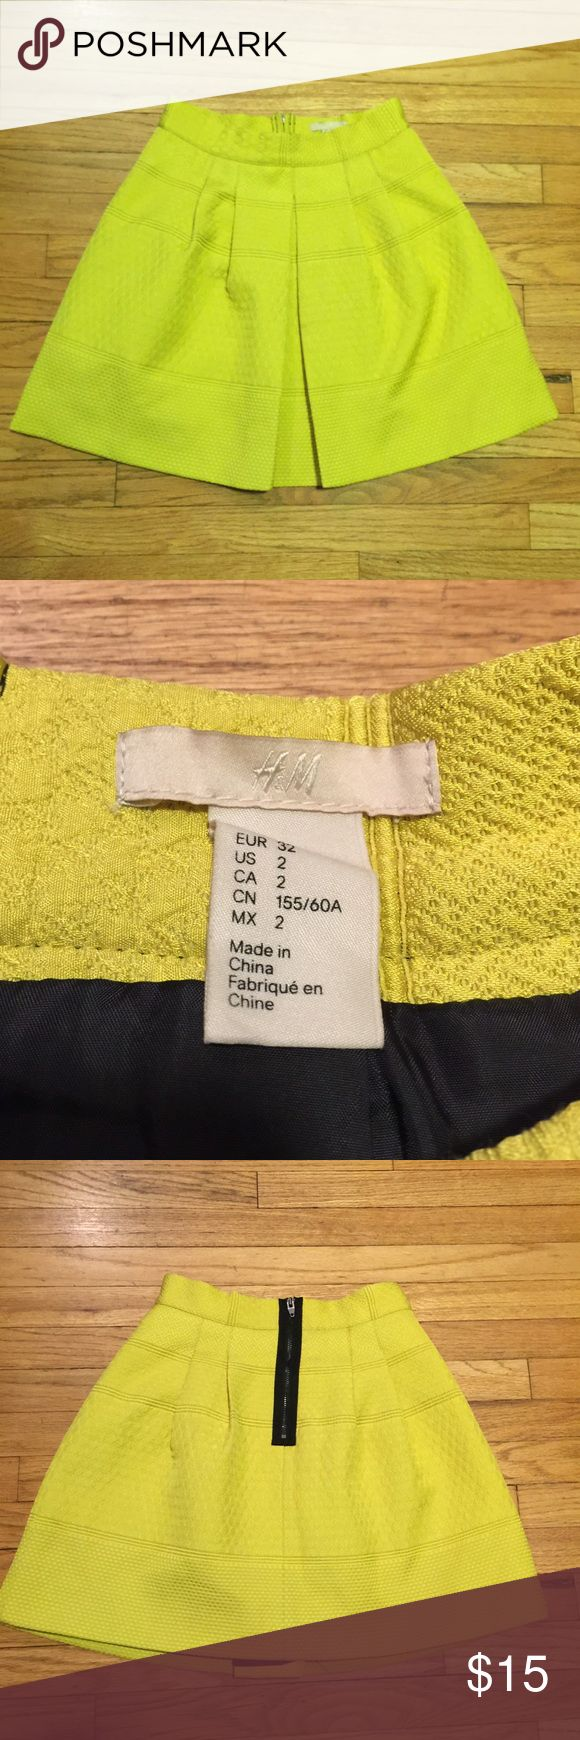 H&M neon yellow mini skirt - sz 2 H&M neon yellow mini skirt - sz 2. Waist - 12.5 inches. Length - 16.5 inches. Excellent condition H&M Skirts Mini